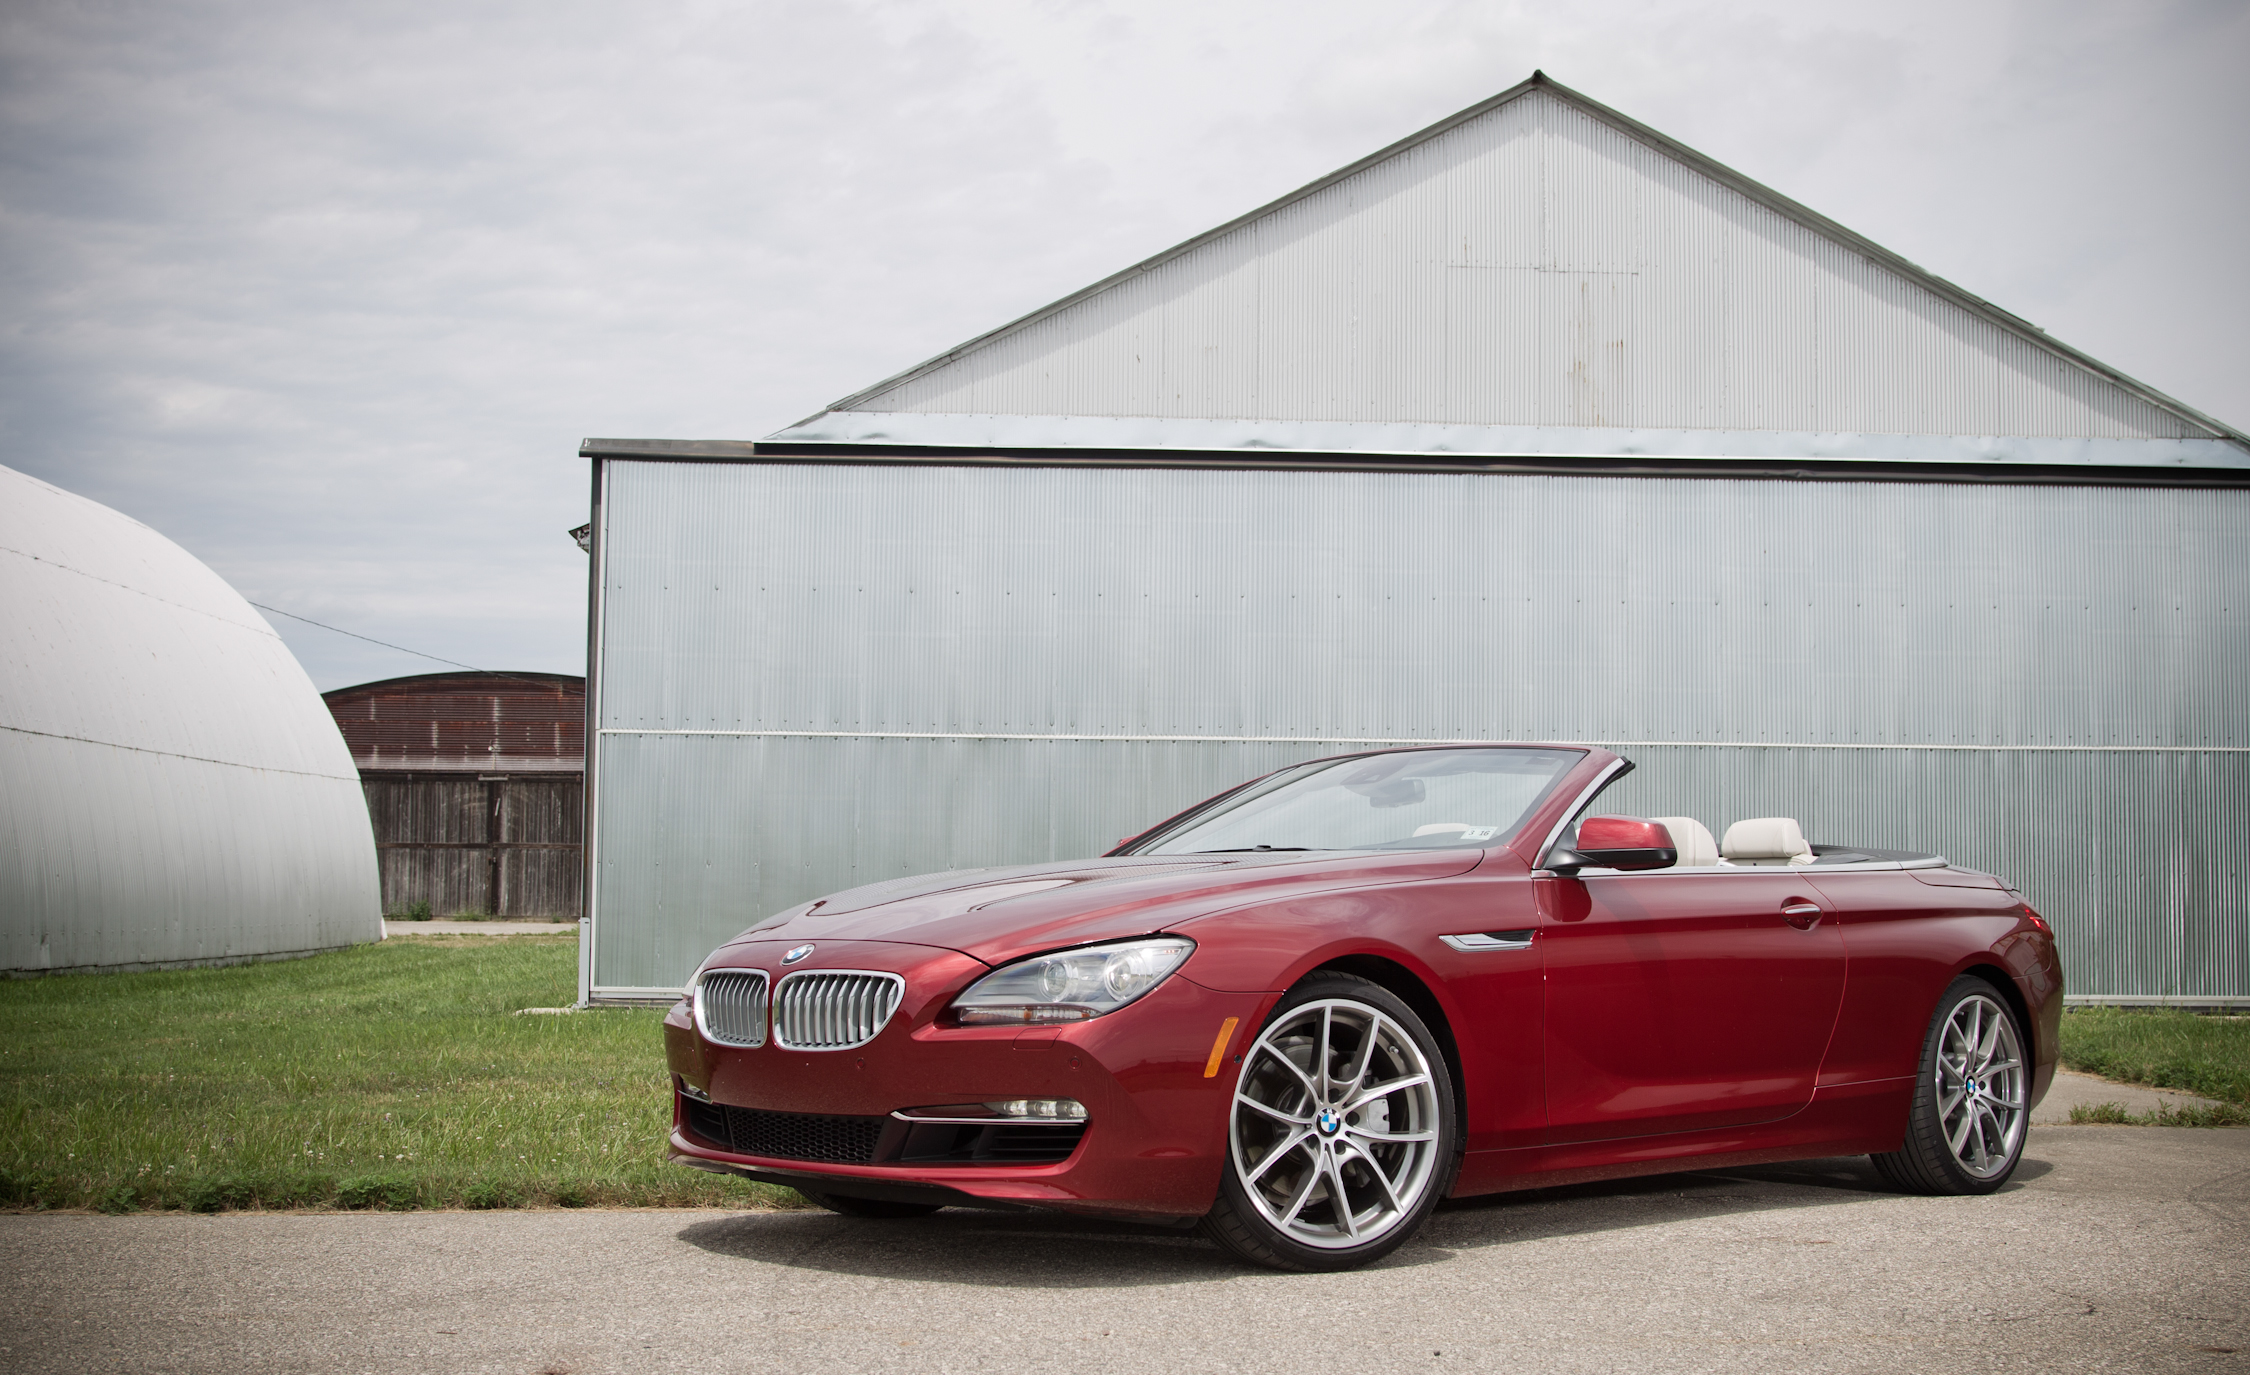 2012 BMW 650i Convertible Exterior Front And Side (Photo 3 of 19)